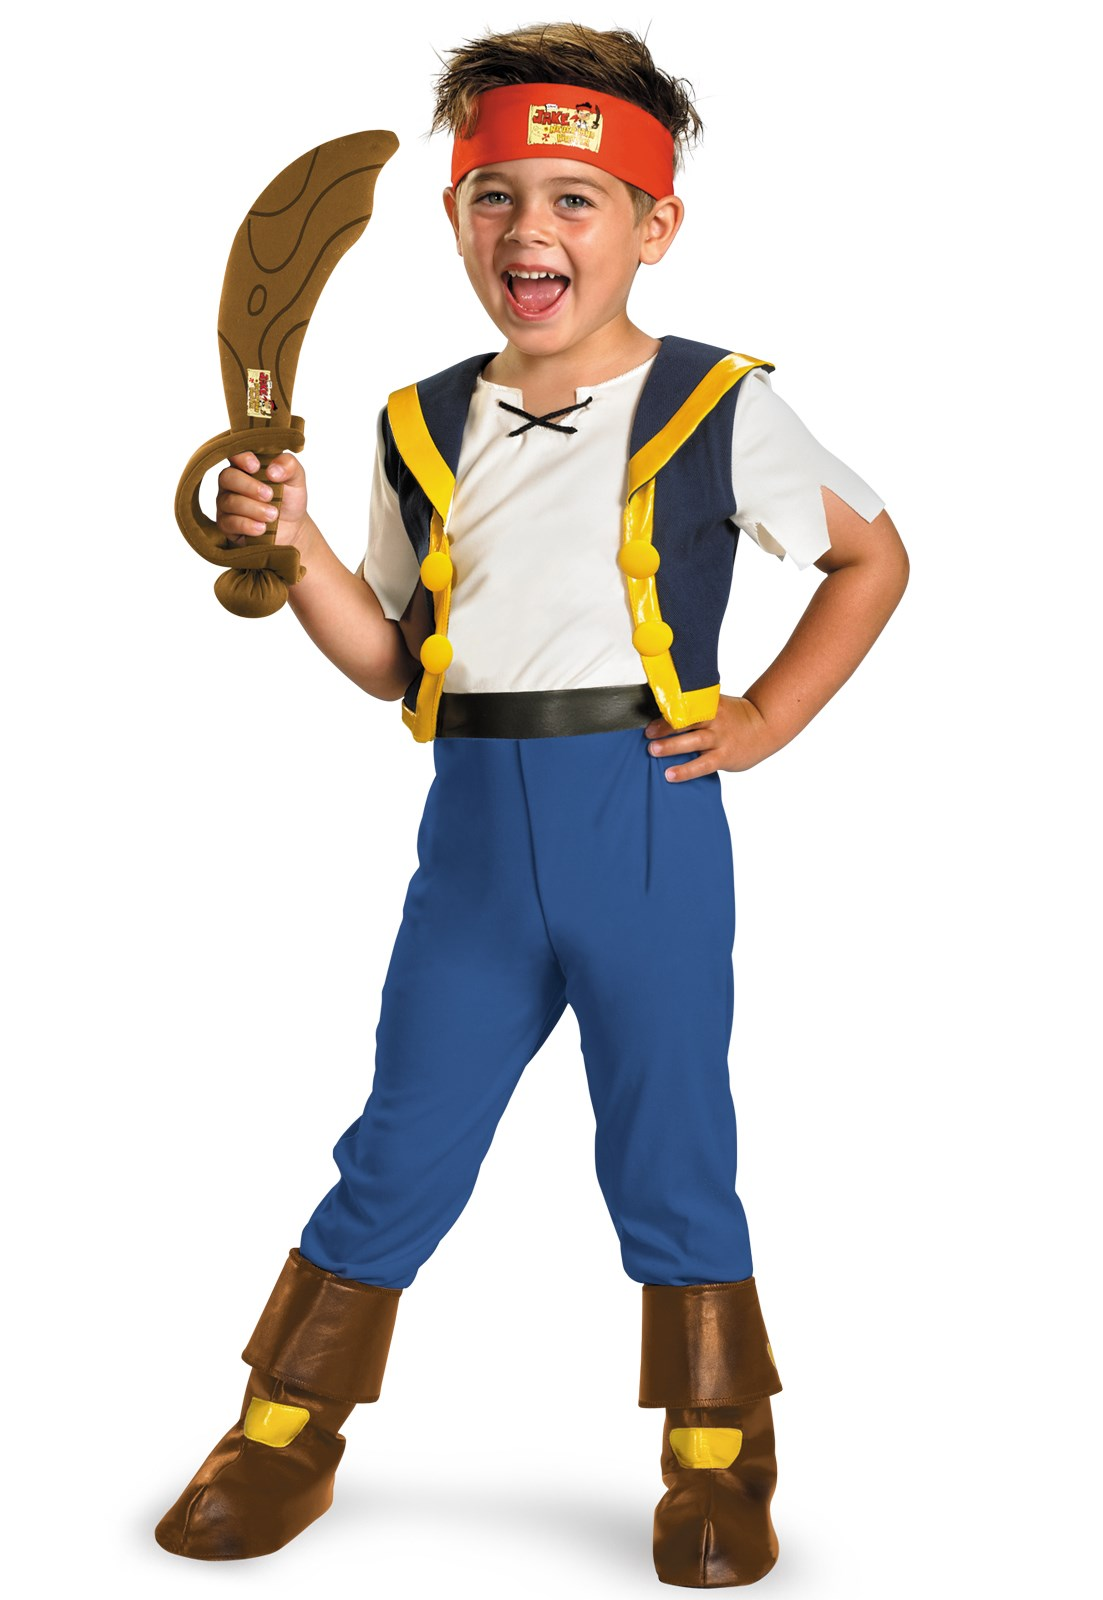 Disney Jake and the Never Land Pirates Deluxe Jake Child Costume 4/6